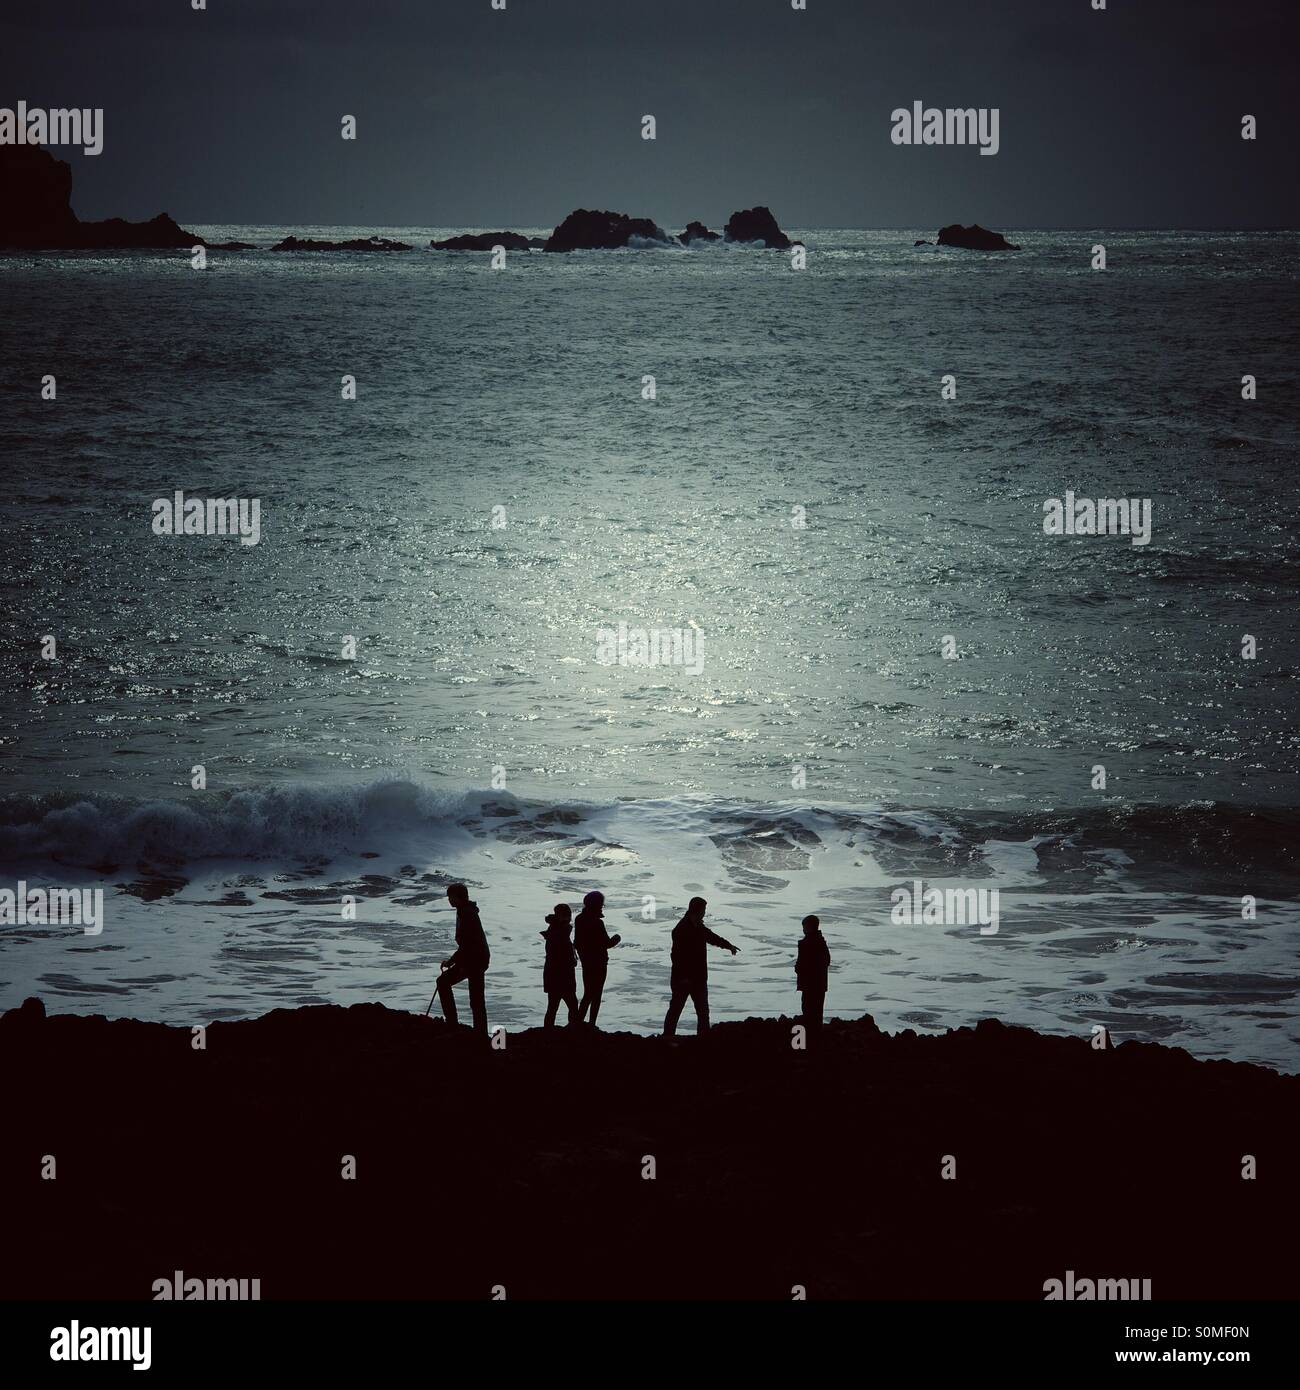 Five silhouettes on an adventure at the seaside. The moonlit Ocean behind them. - Stock Image